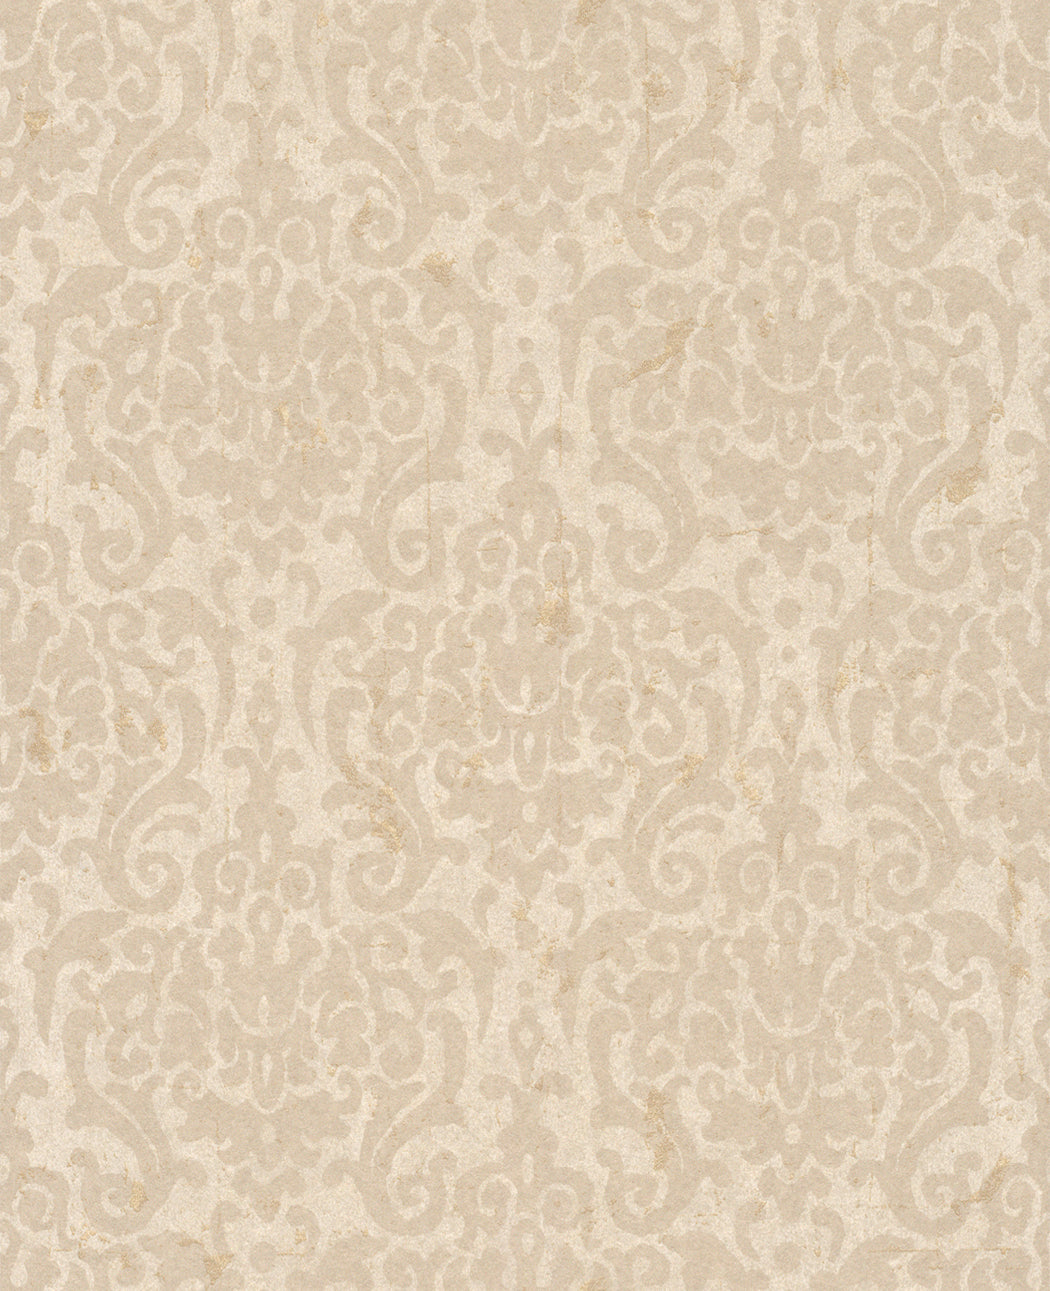 Metallic Weathered Damask Wallpaper Beige And Taupe R4750